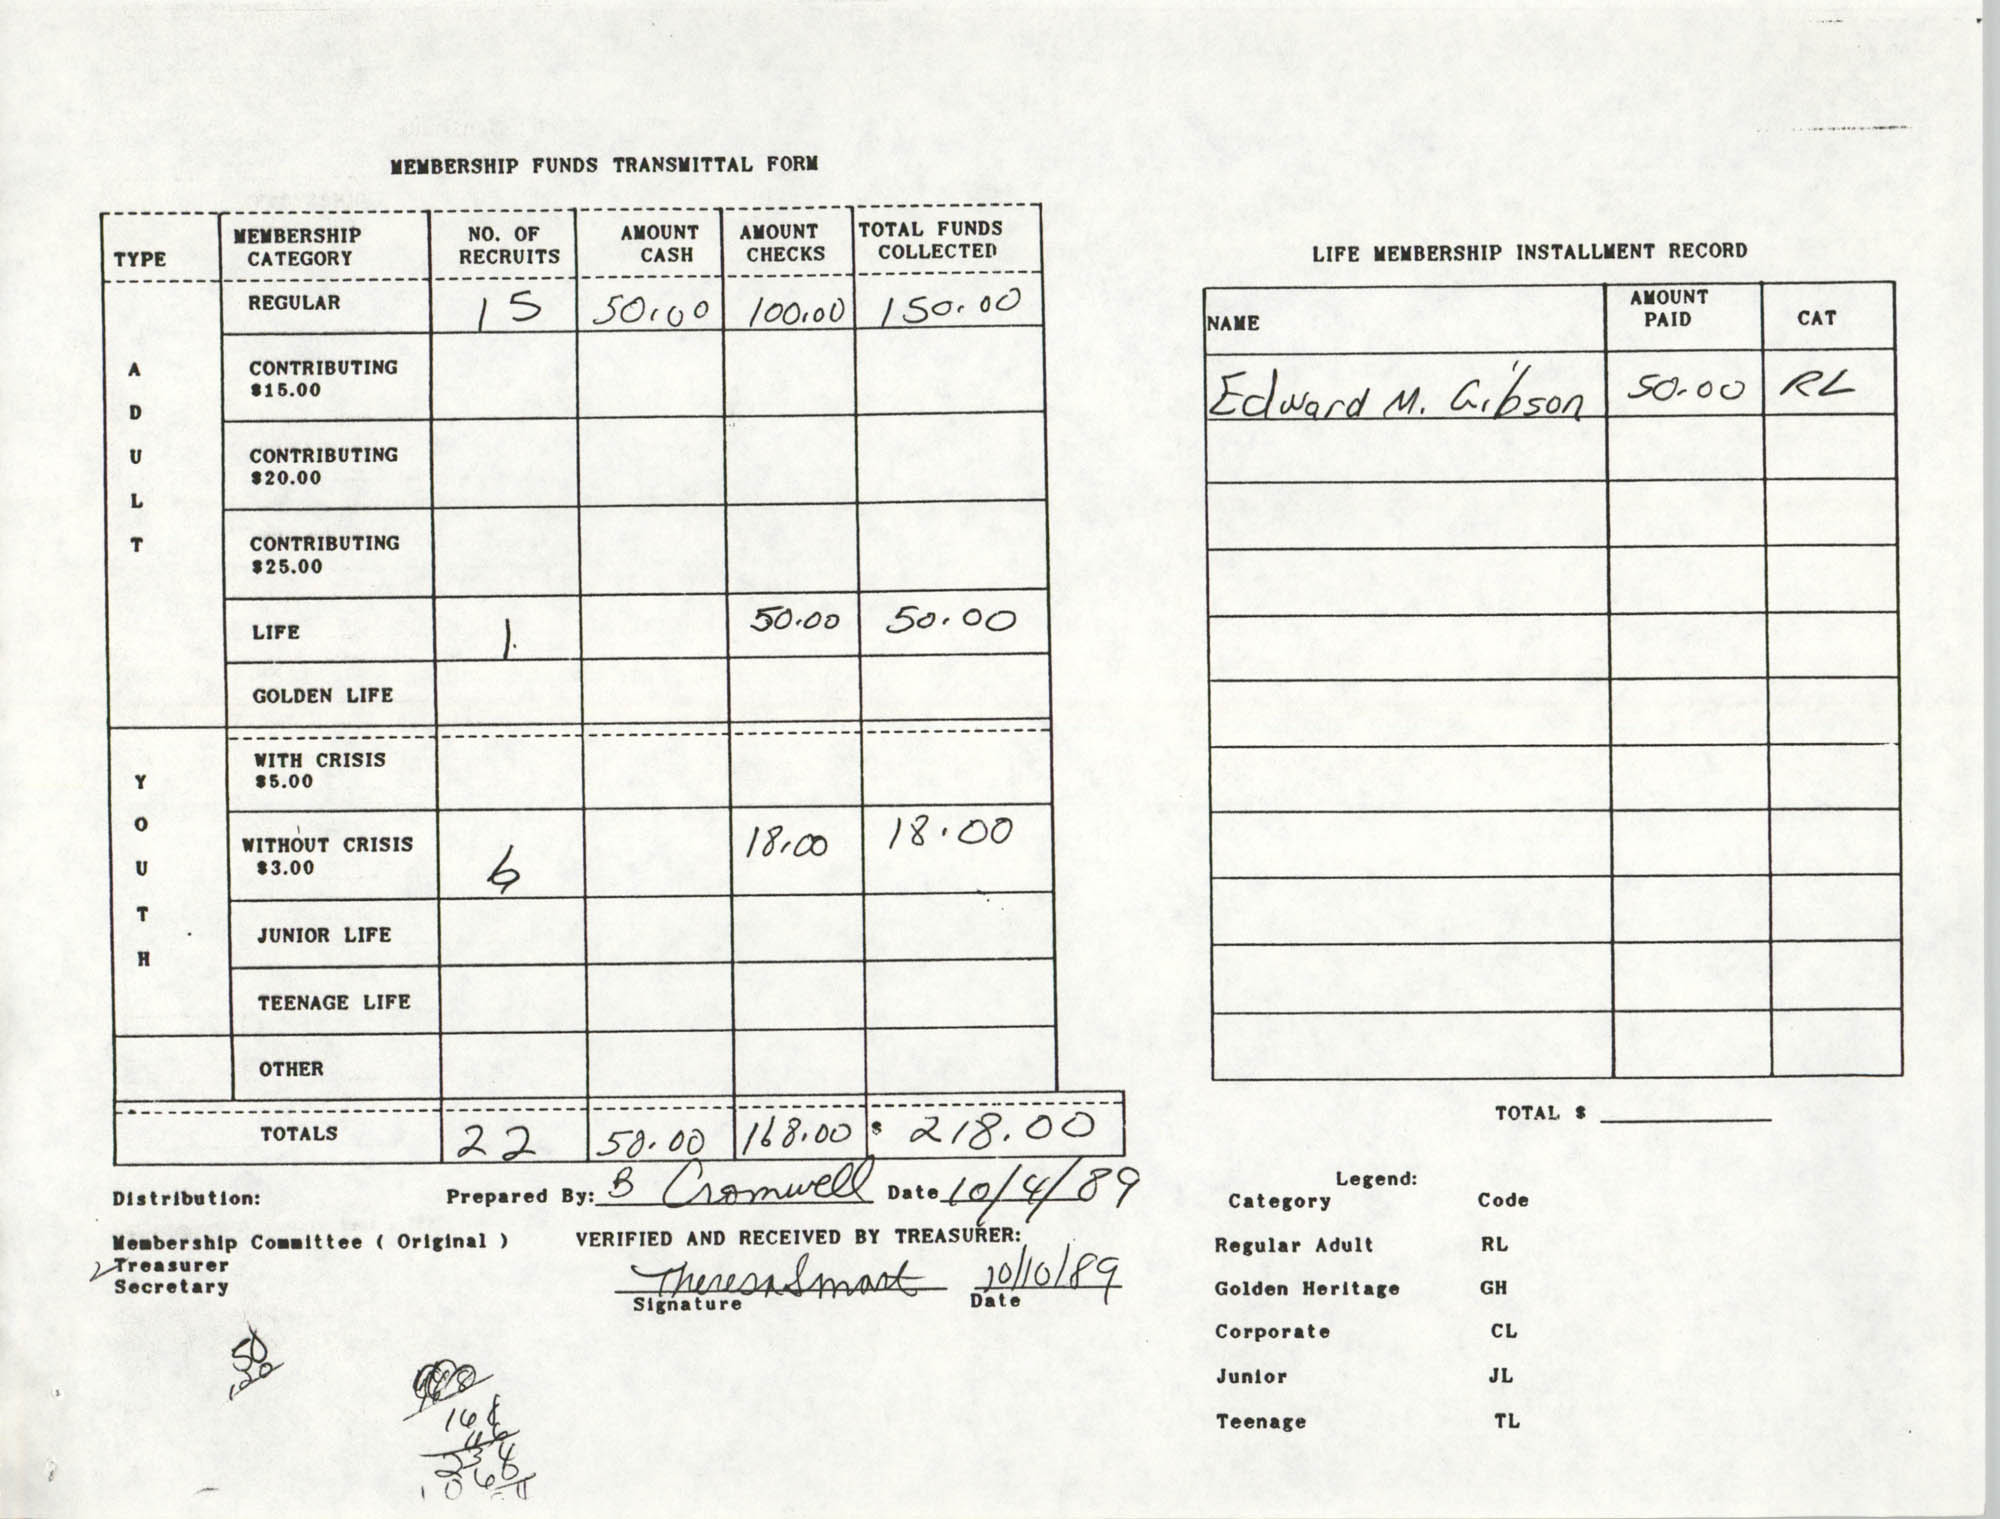 Charleston Branch of the NAACP Funds Transmittal Forms, October 1989, Page 1